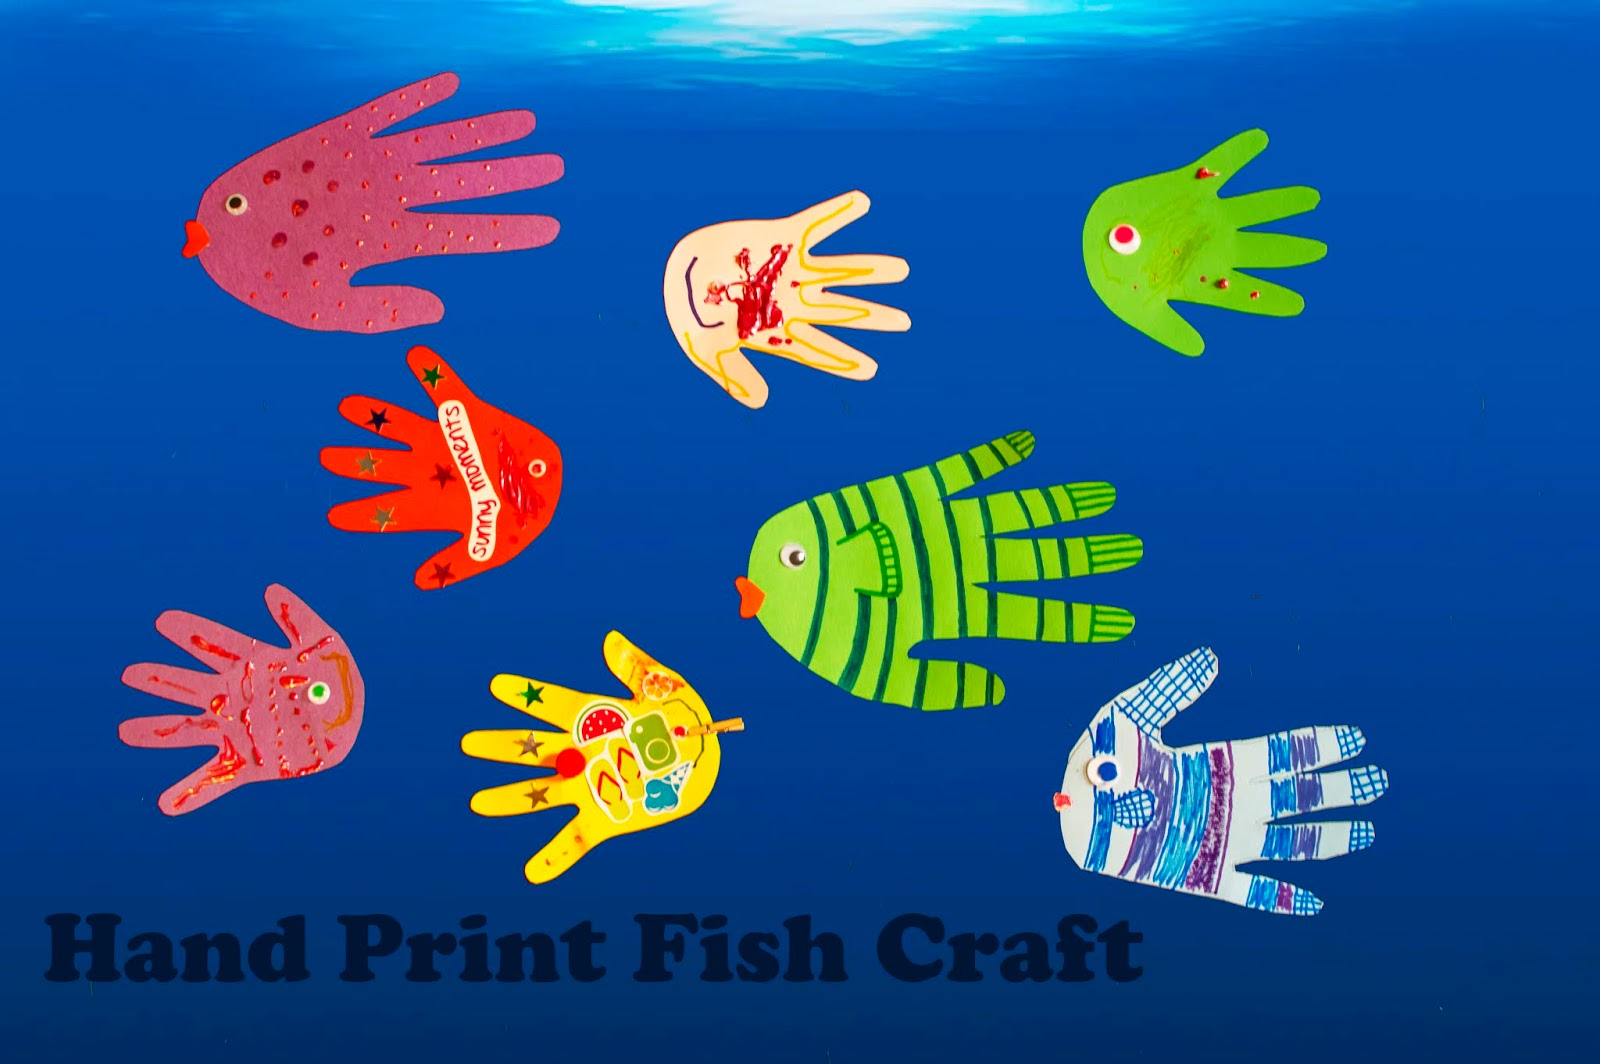 What I Live For: Hand Print Fish Craft